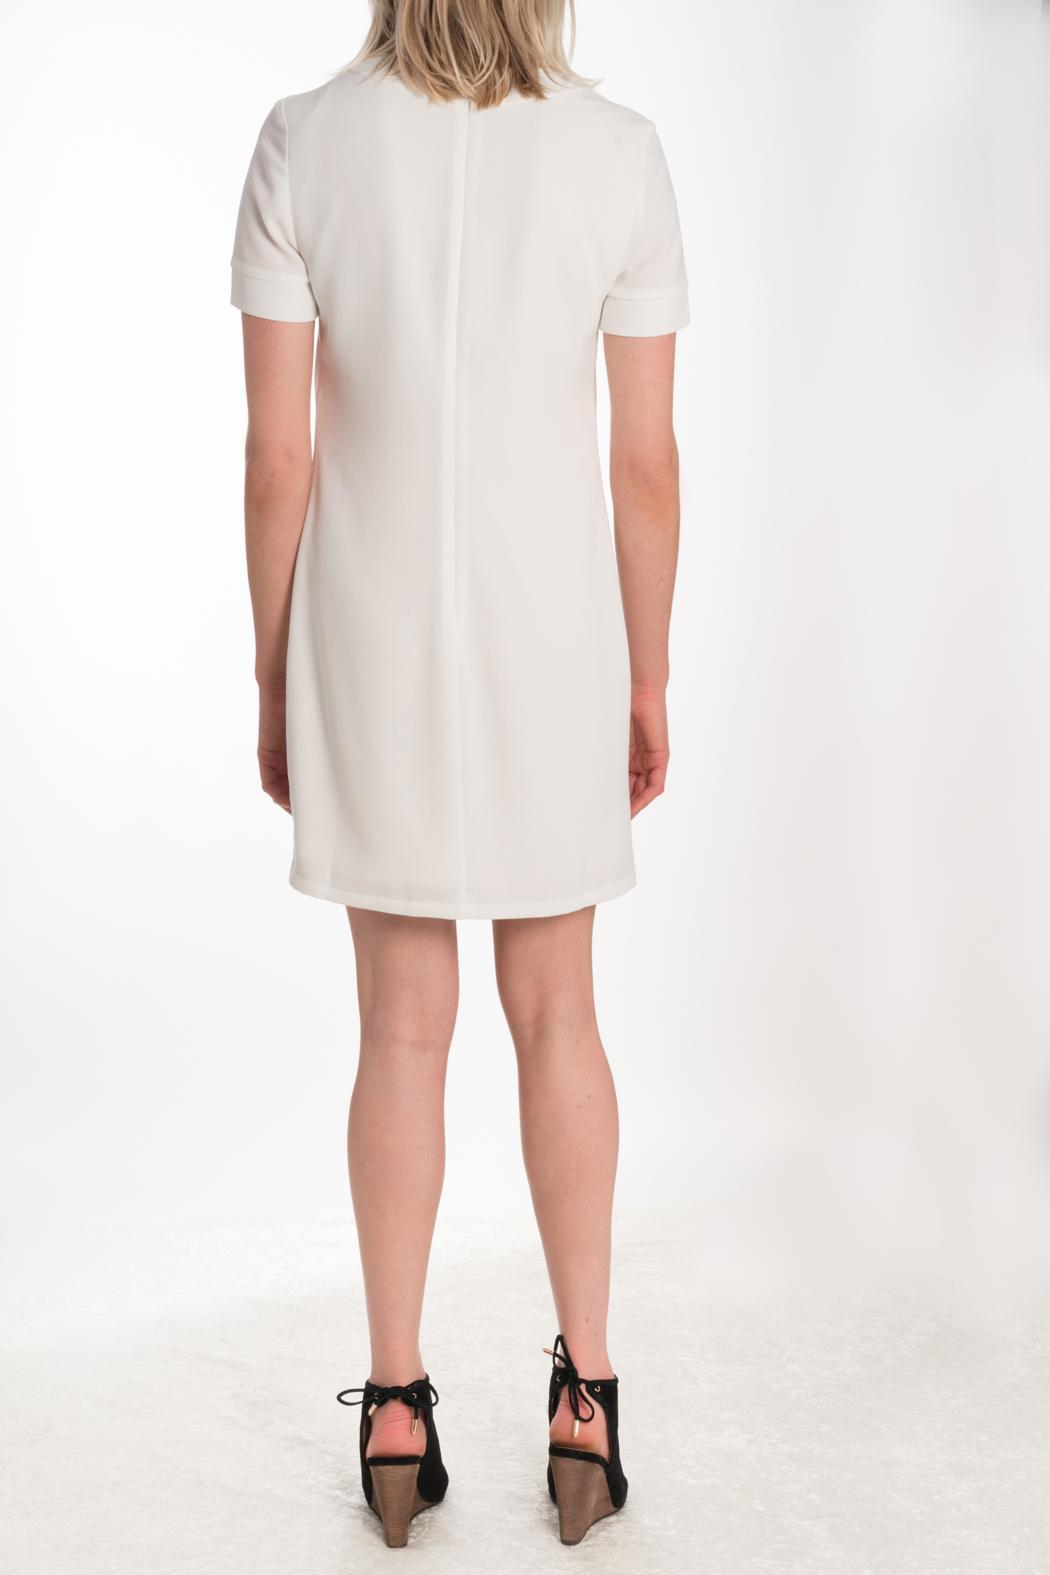 Kut from the Kloth Lace Up Dress - Side Cropped Image